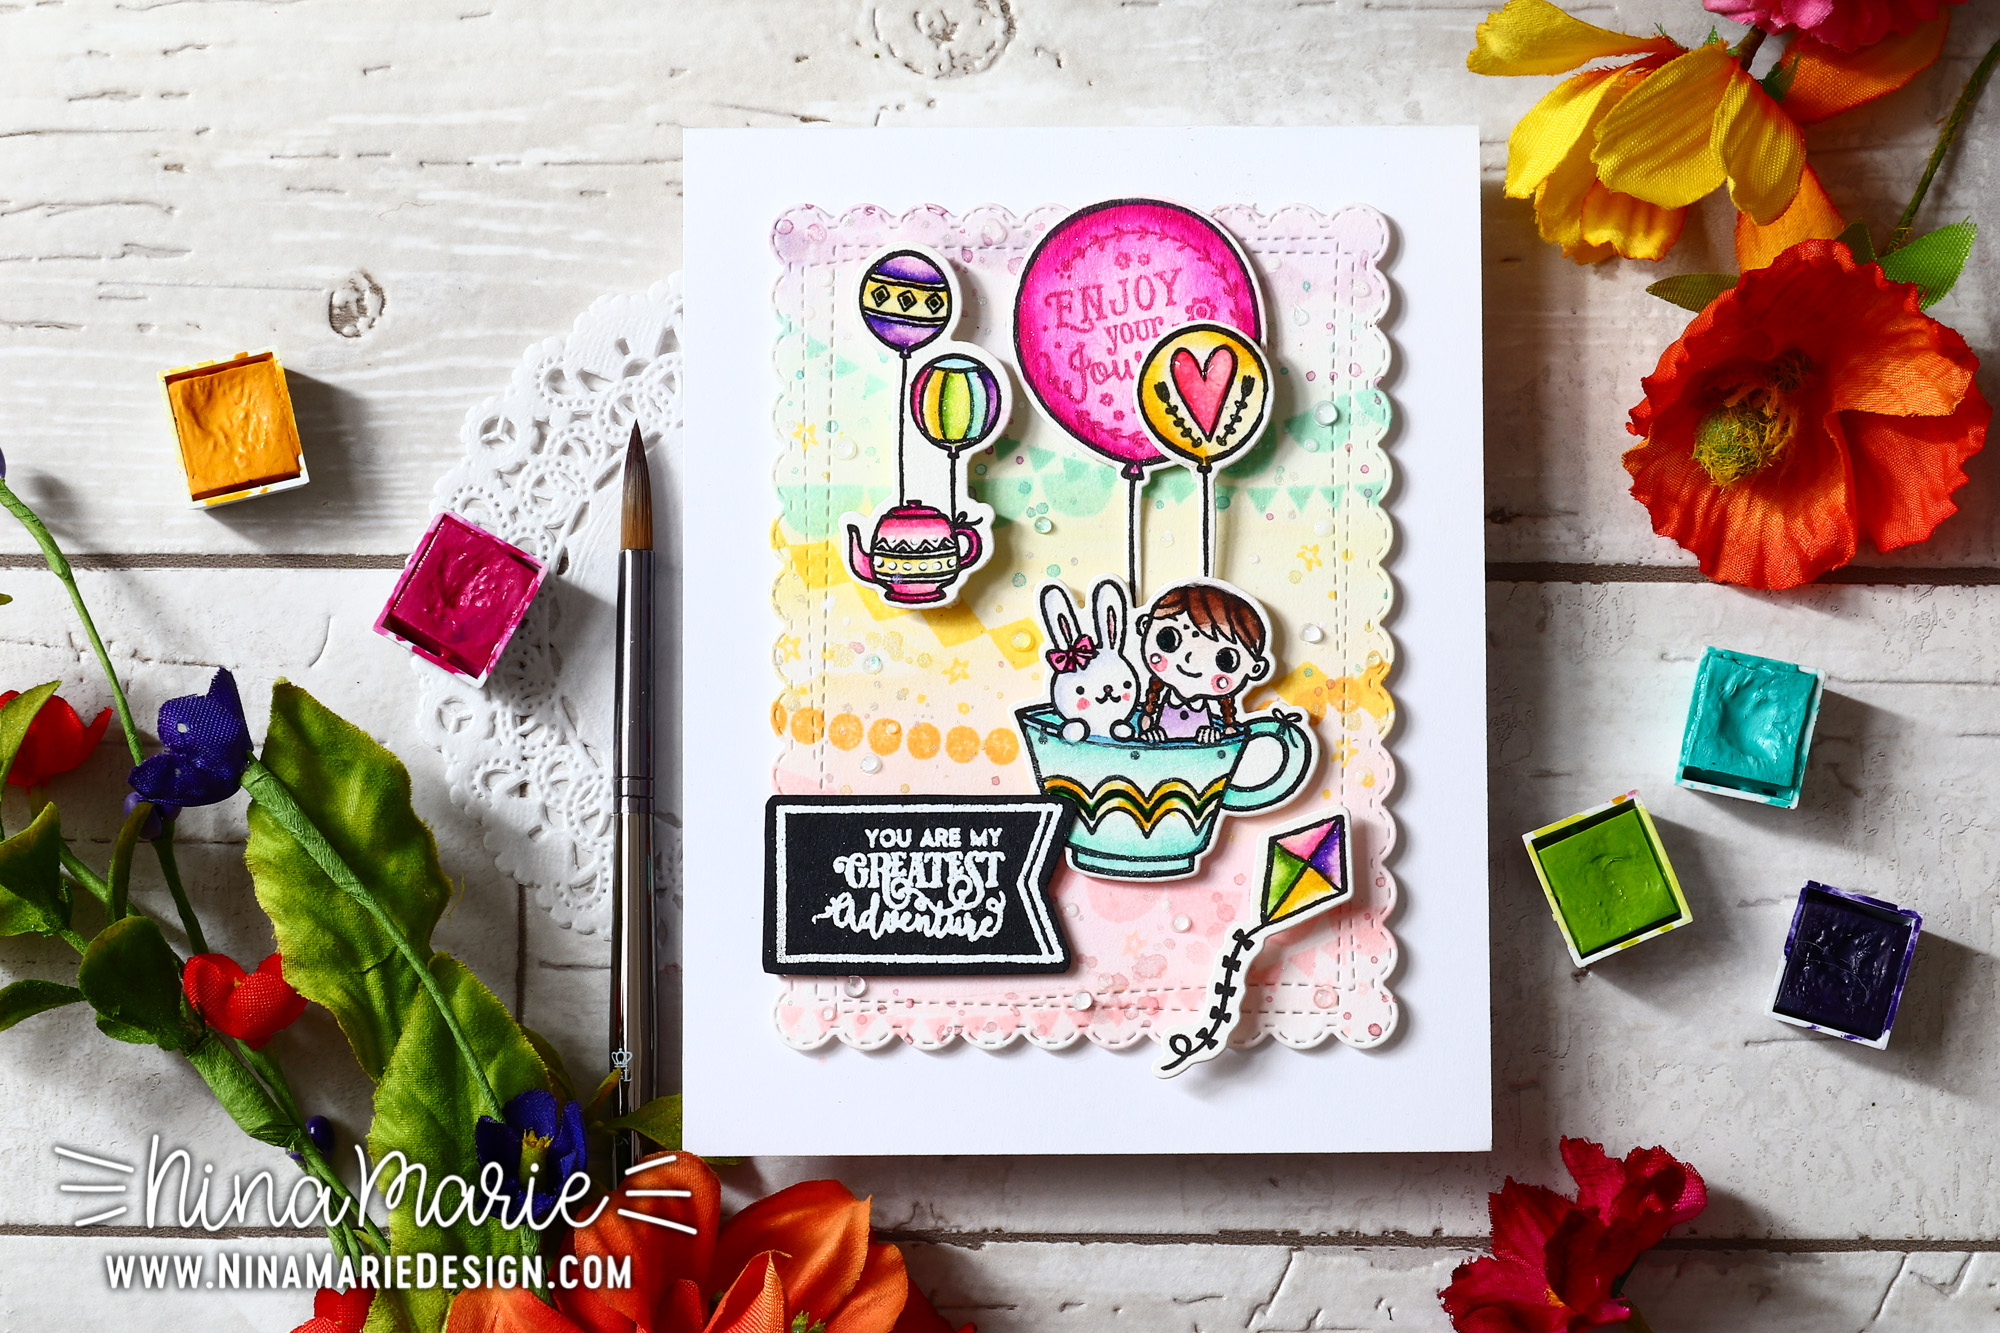 Pinkfresh Studio 4th Birthday Blog Hop